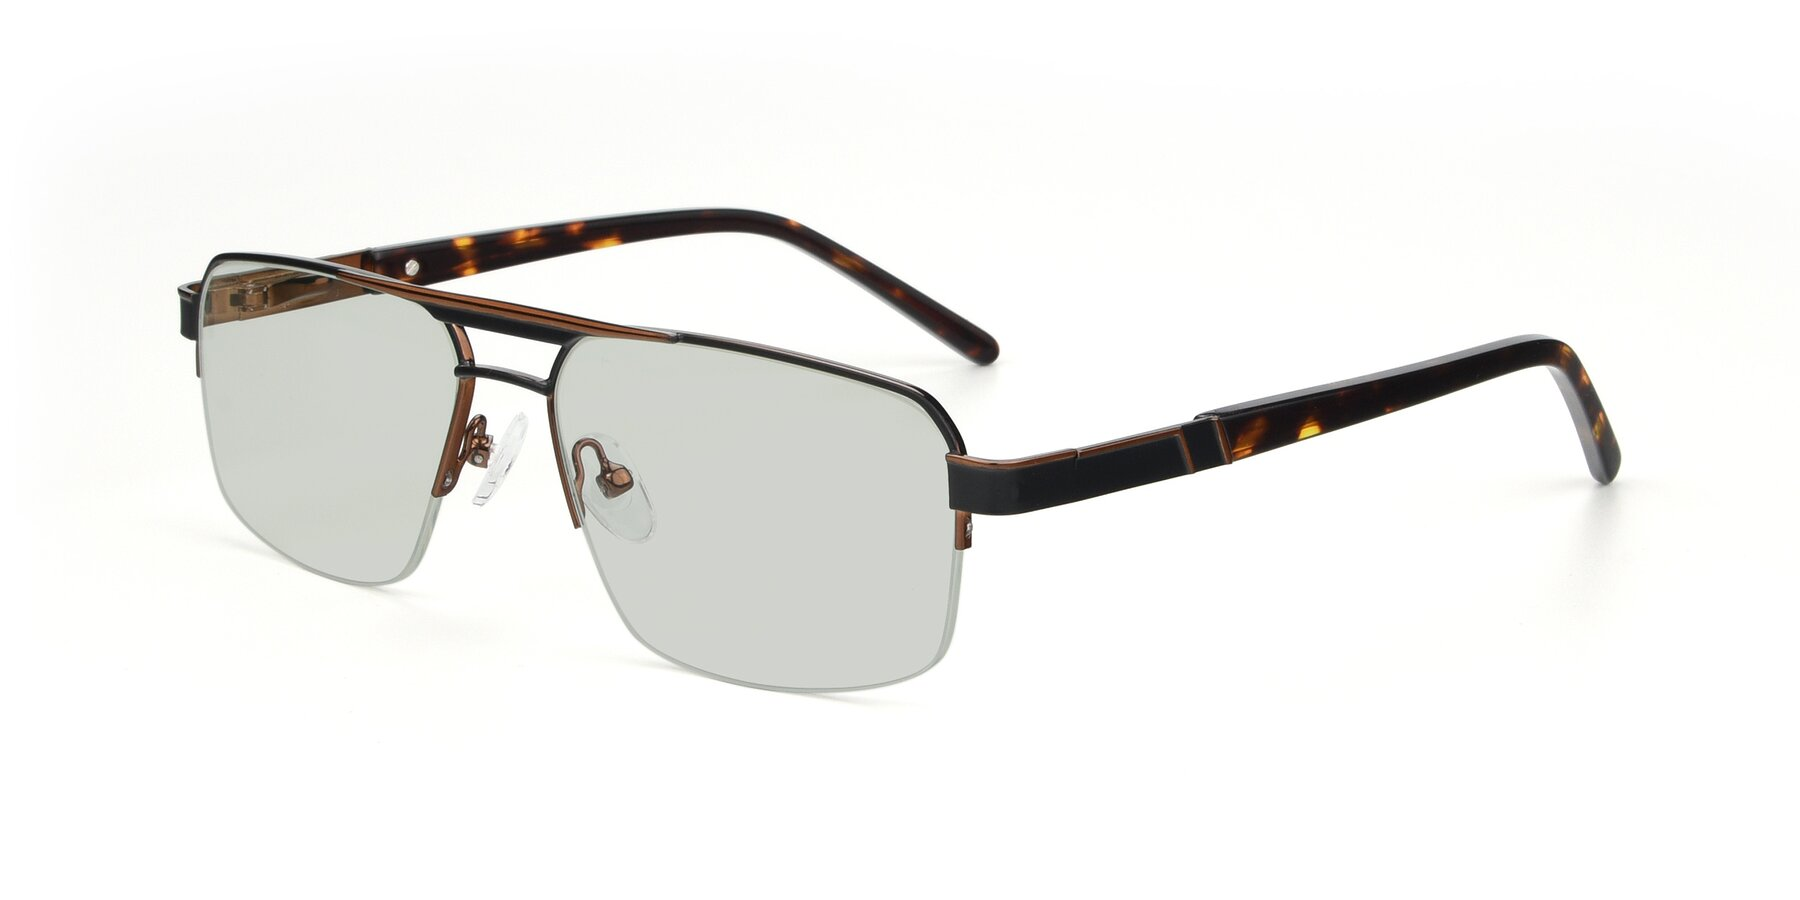 Angle of 19004 in Black-Bronze with Light Green Tinted Lenses